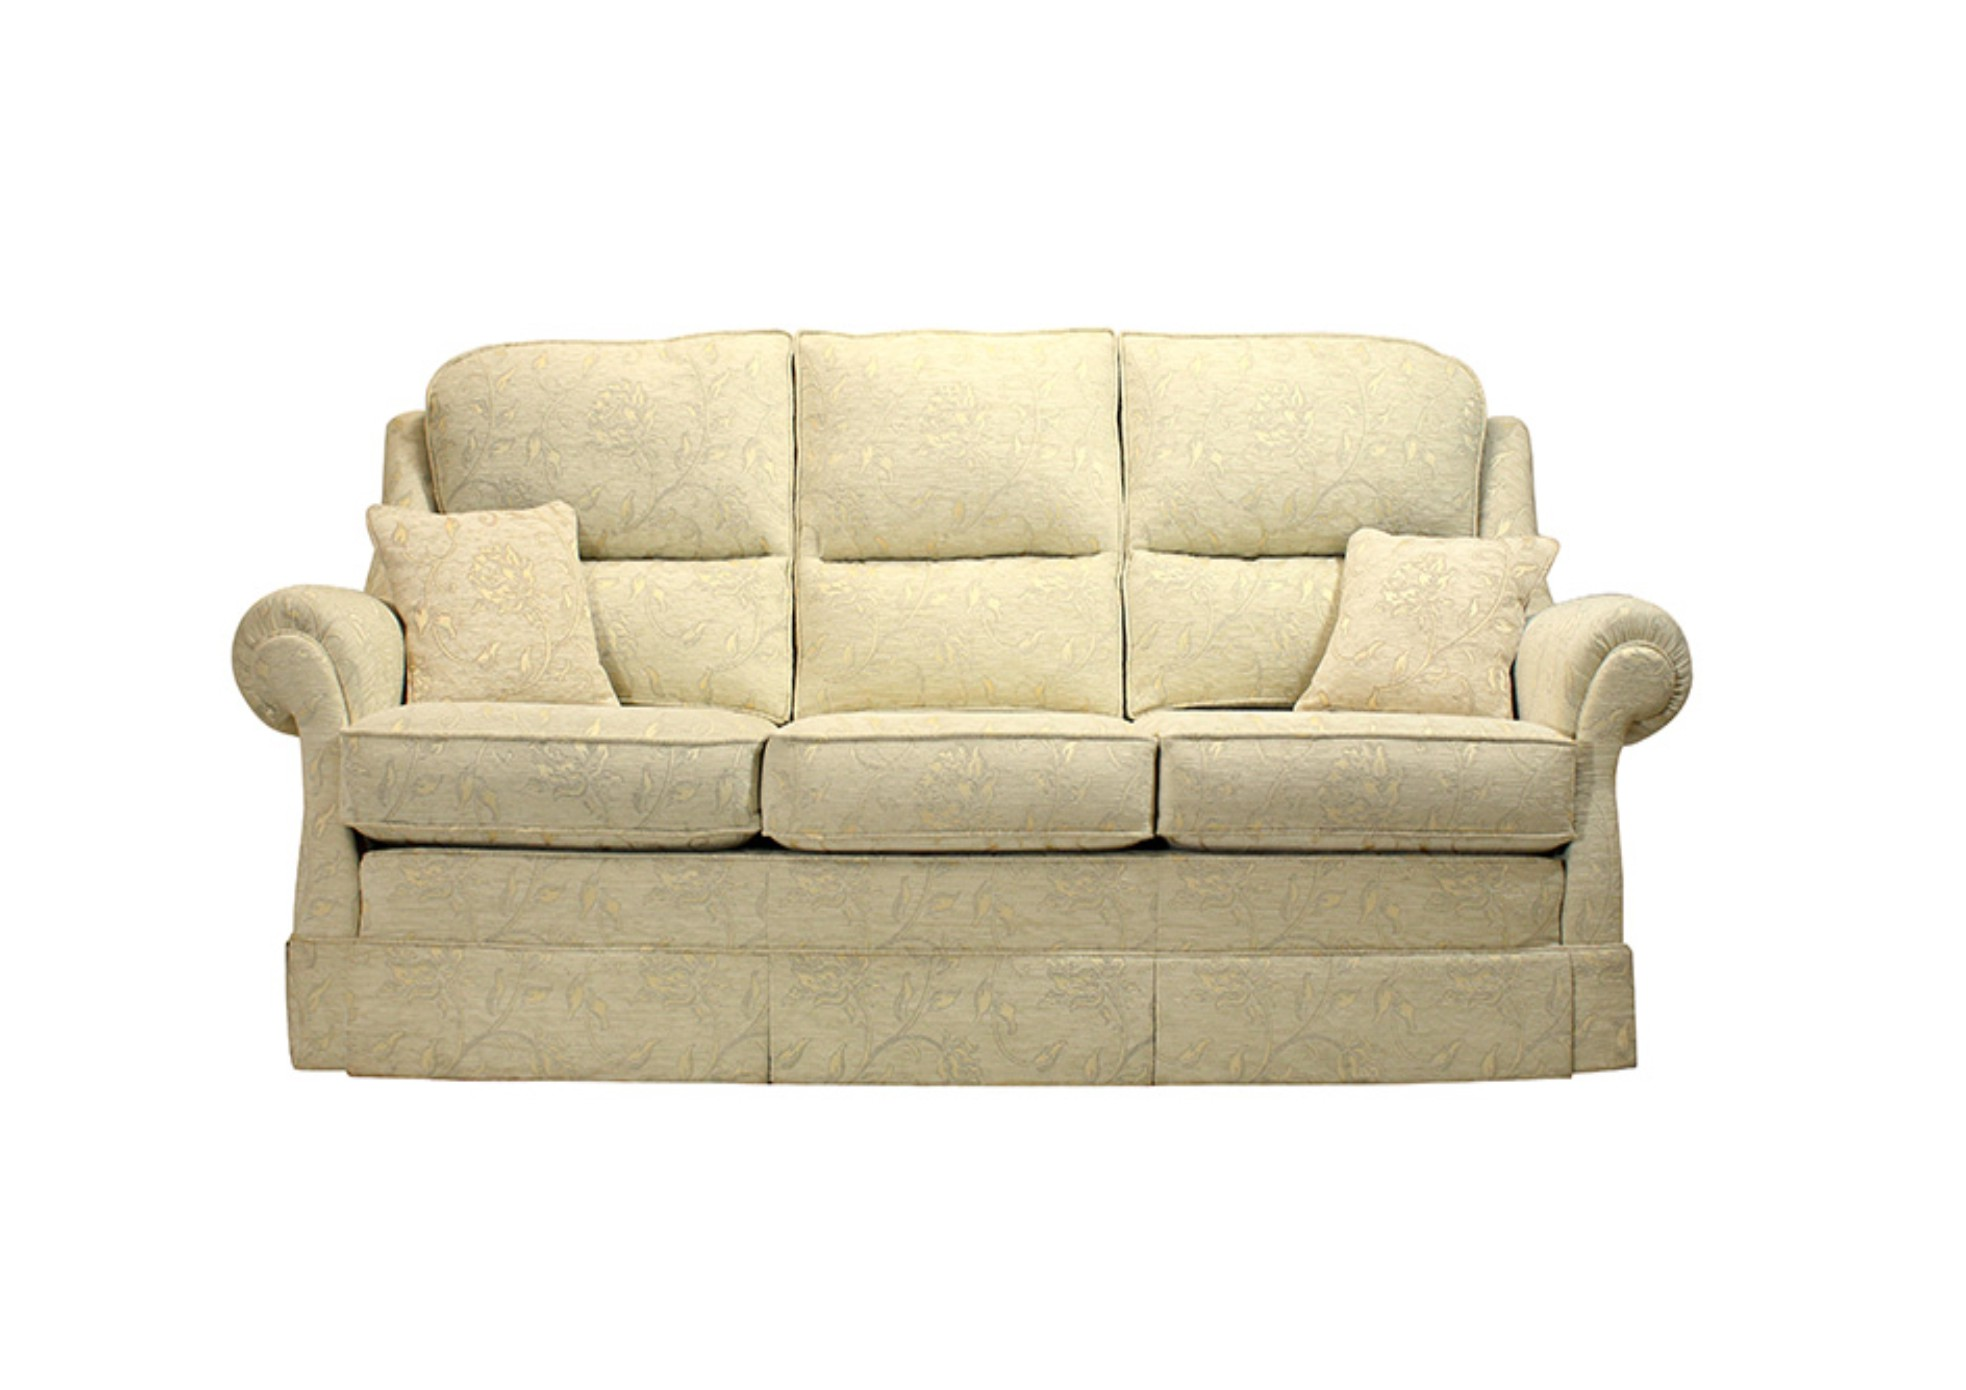 Malvern Bridgecraft 3 Seater Sofa